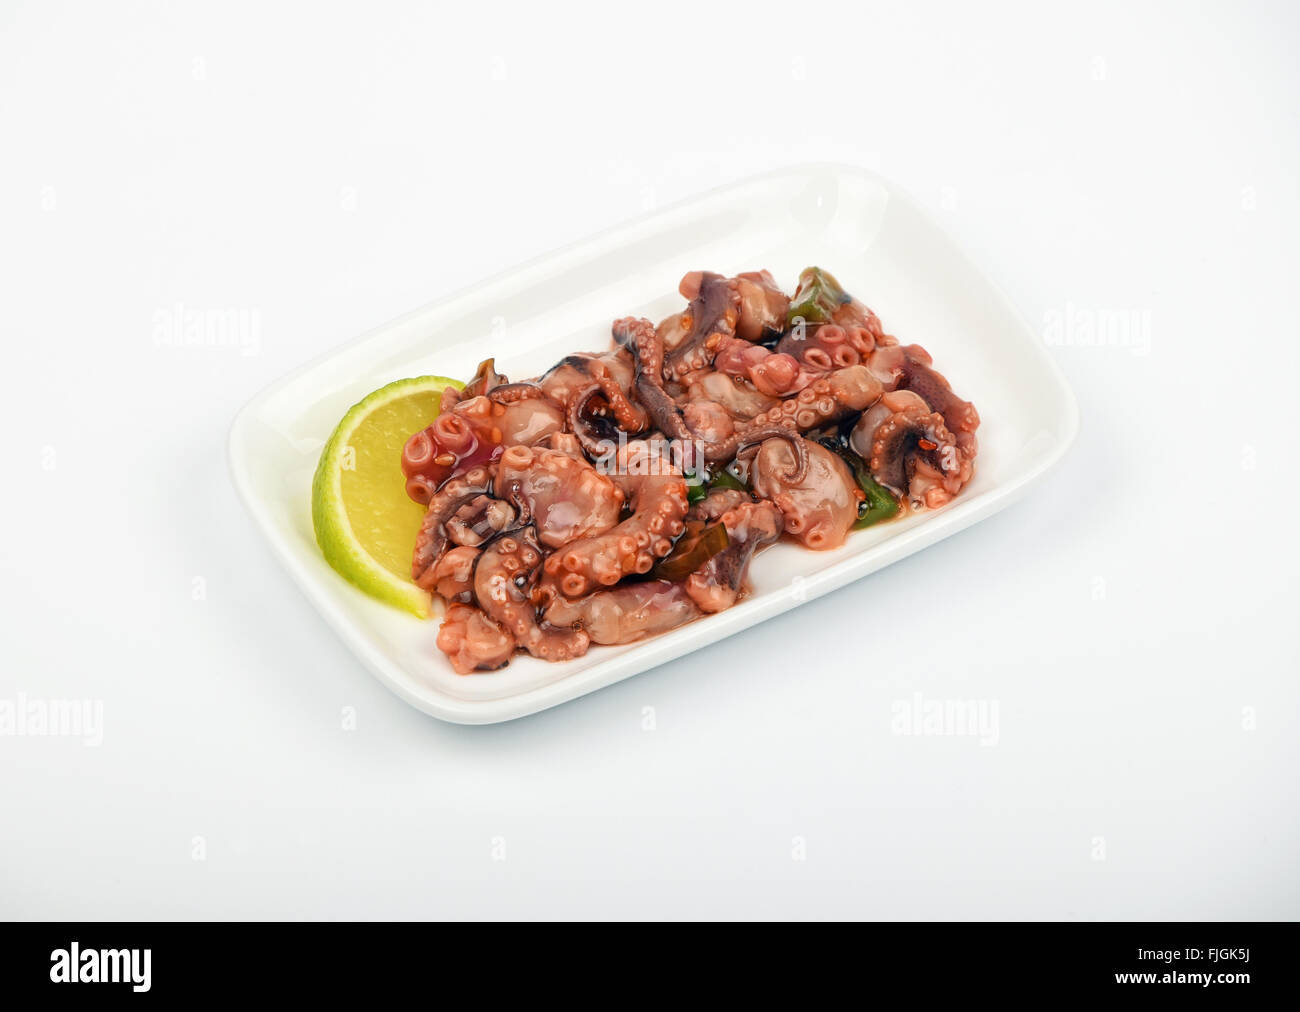 Seafood octopus cuttlefish marinated salad snack with souse on white dish plate over white background, high angle - Stock Image